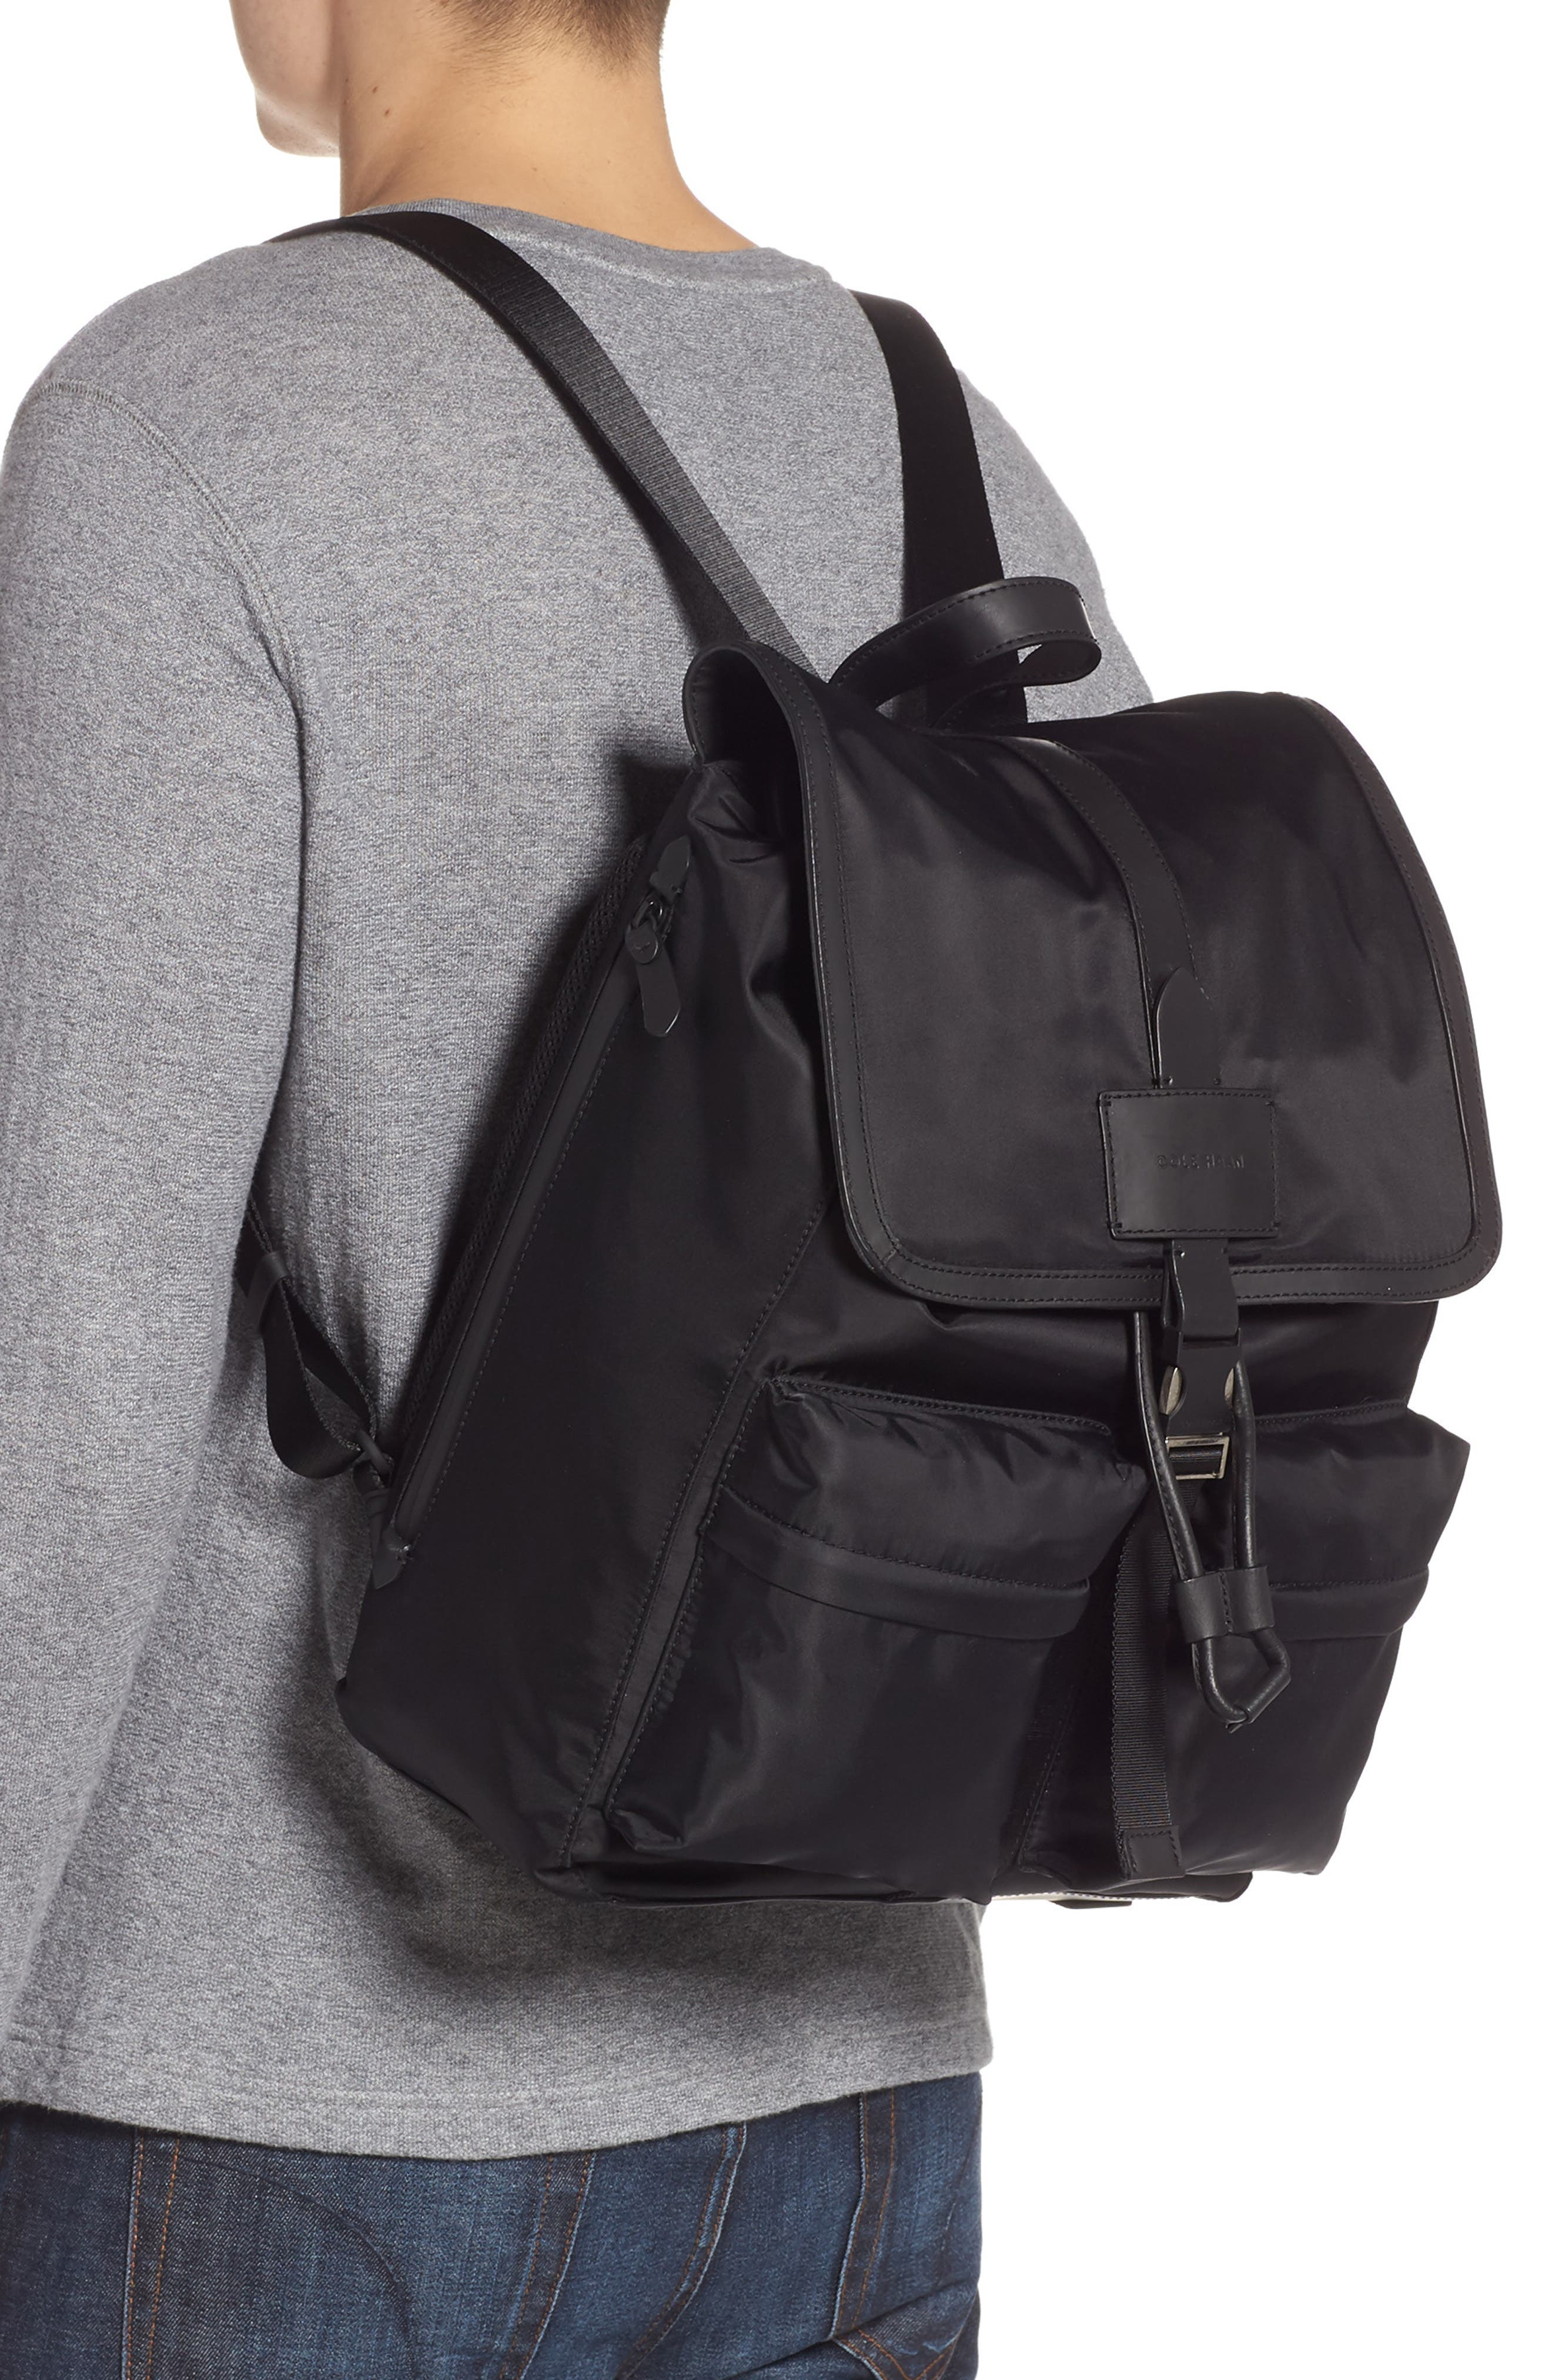 COLE HAAN, ZeroGrand Backpack, Alternate thumbnail 2, color, BLACK